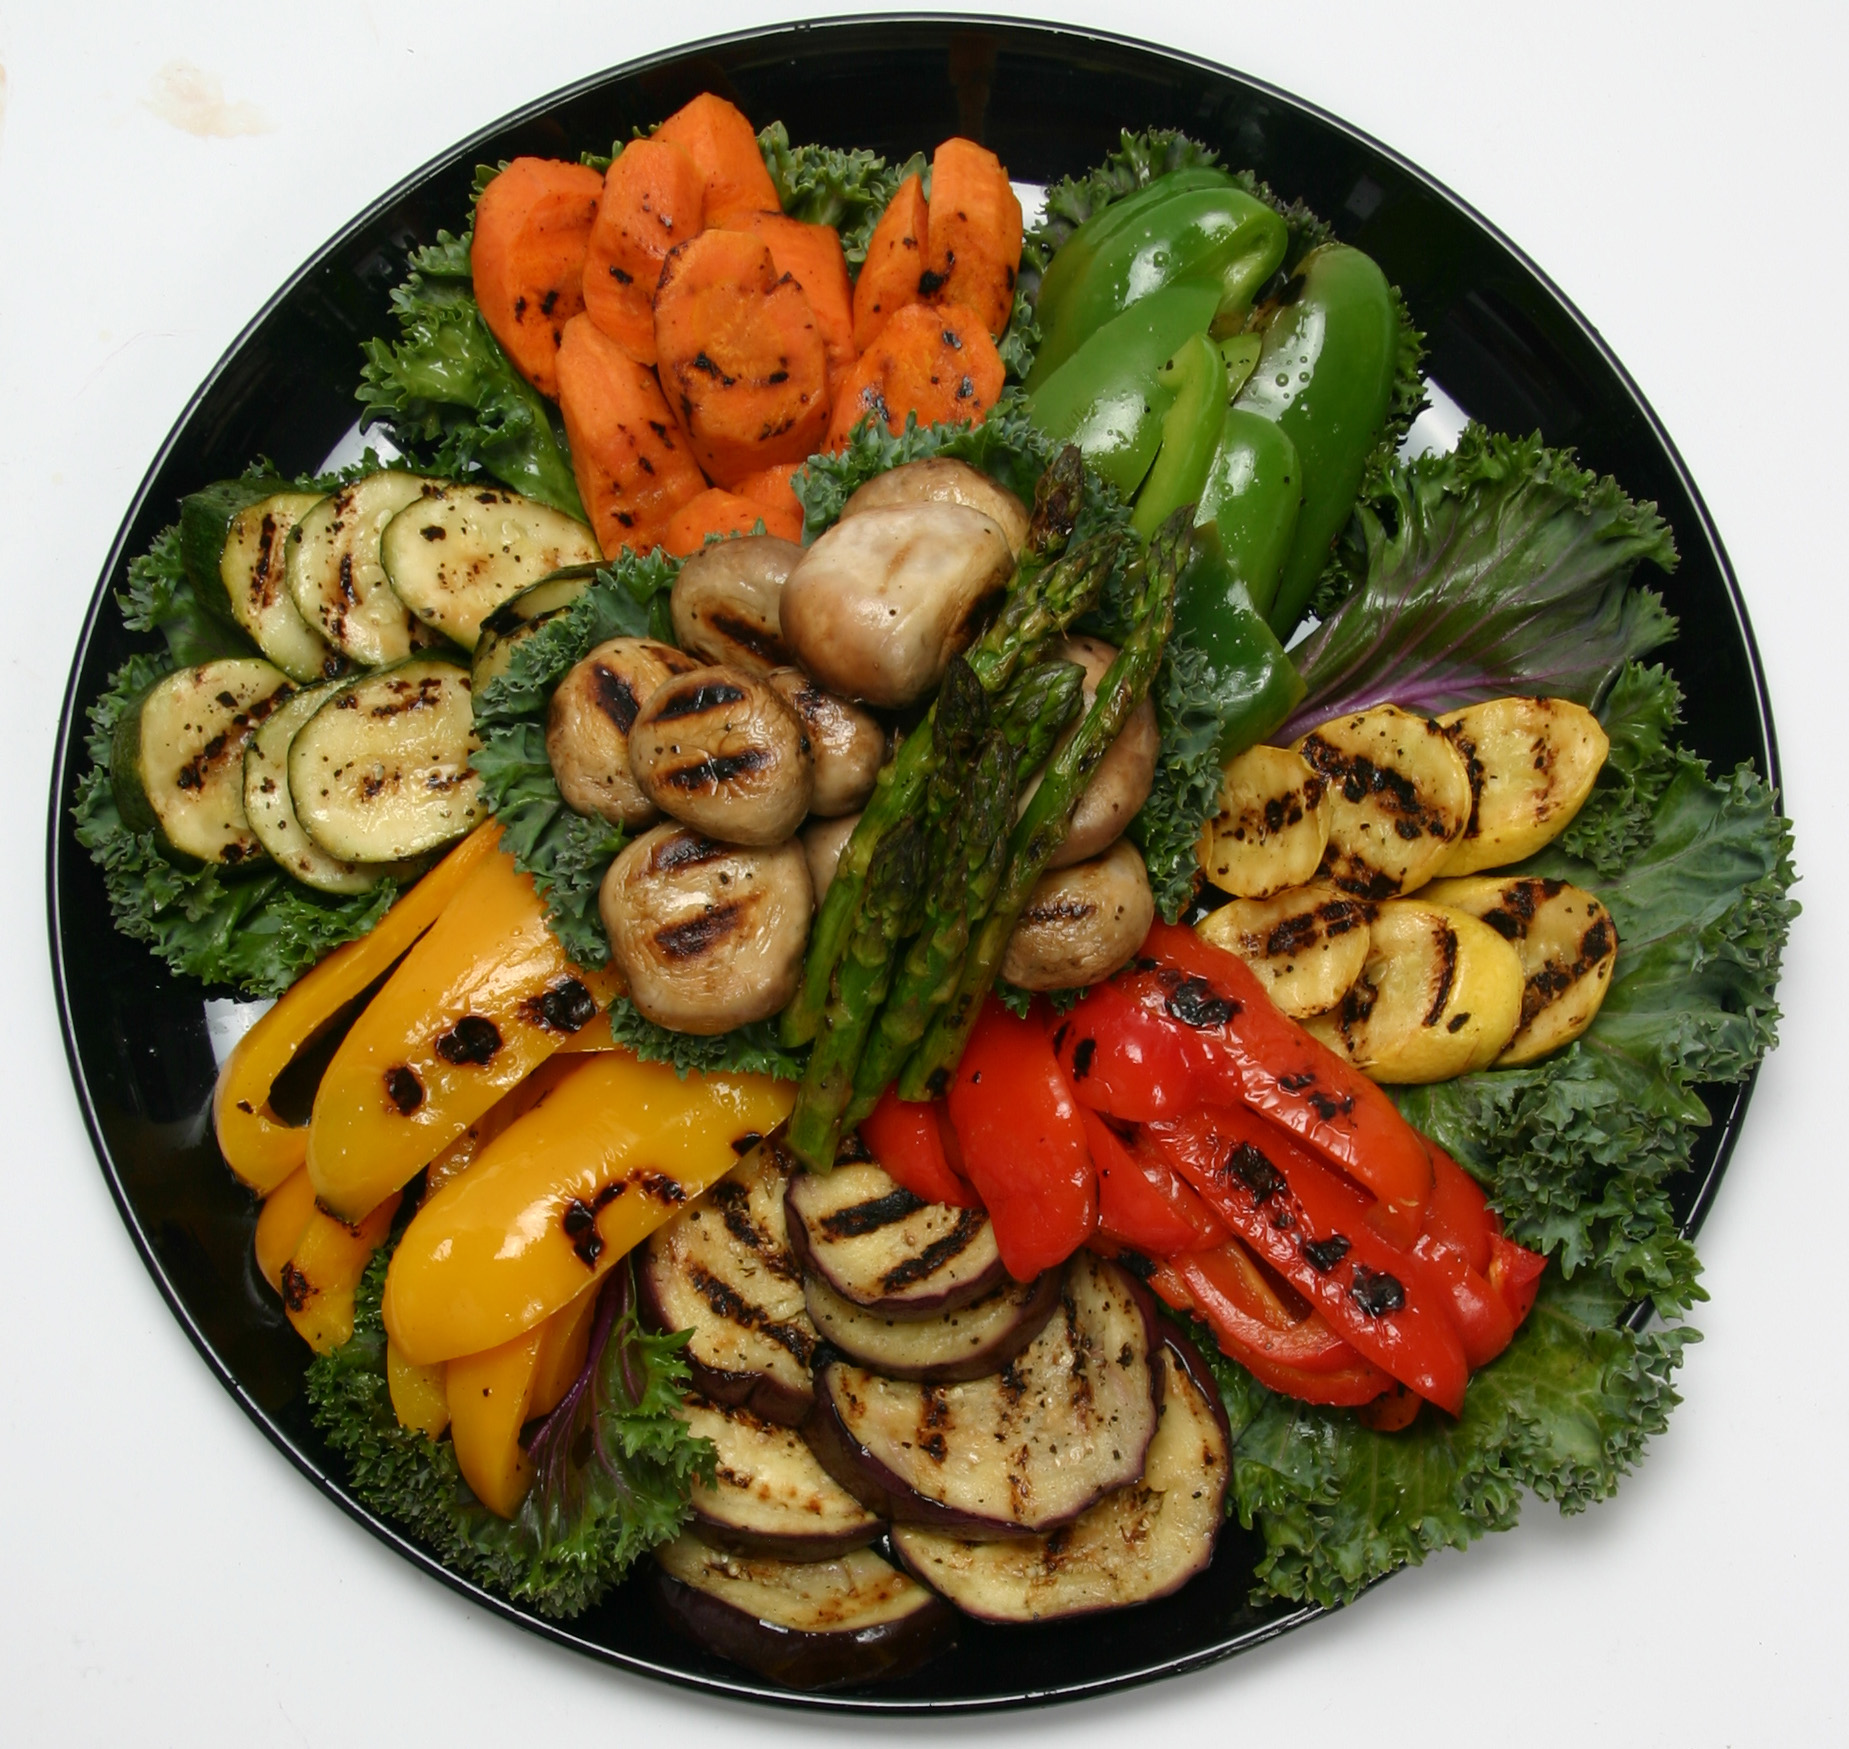 Grilled Peppers, Mushrooms, and Squash